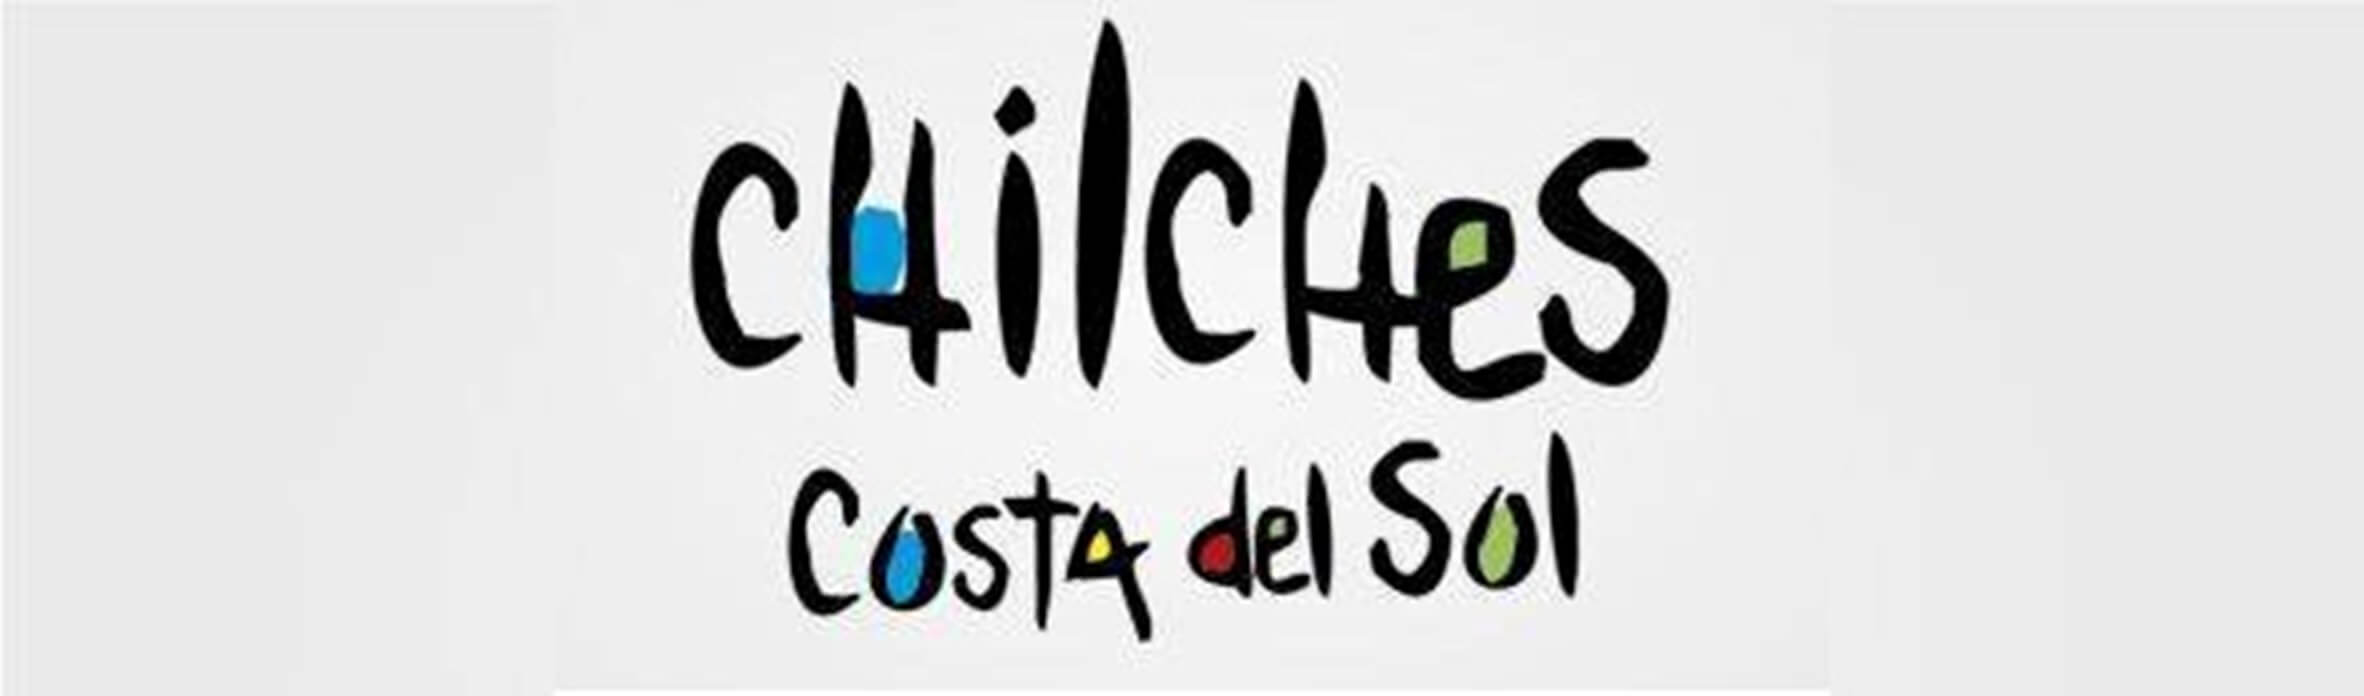 Chilches Costa del Sol